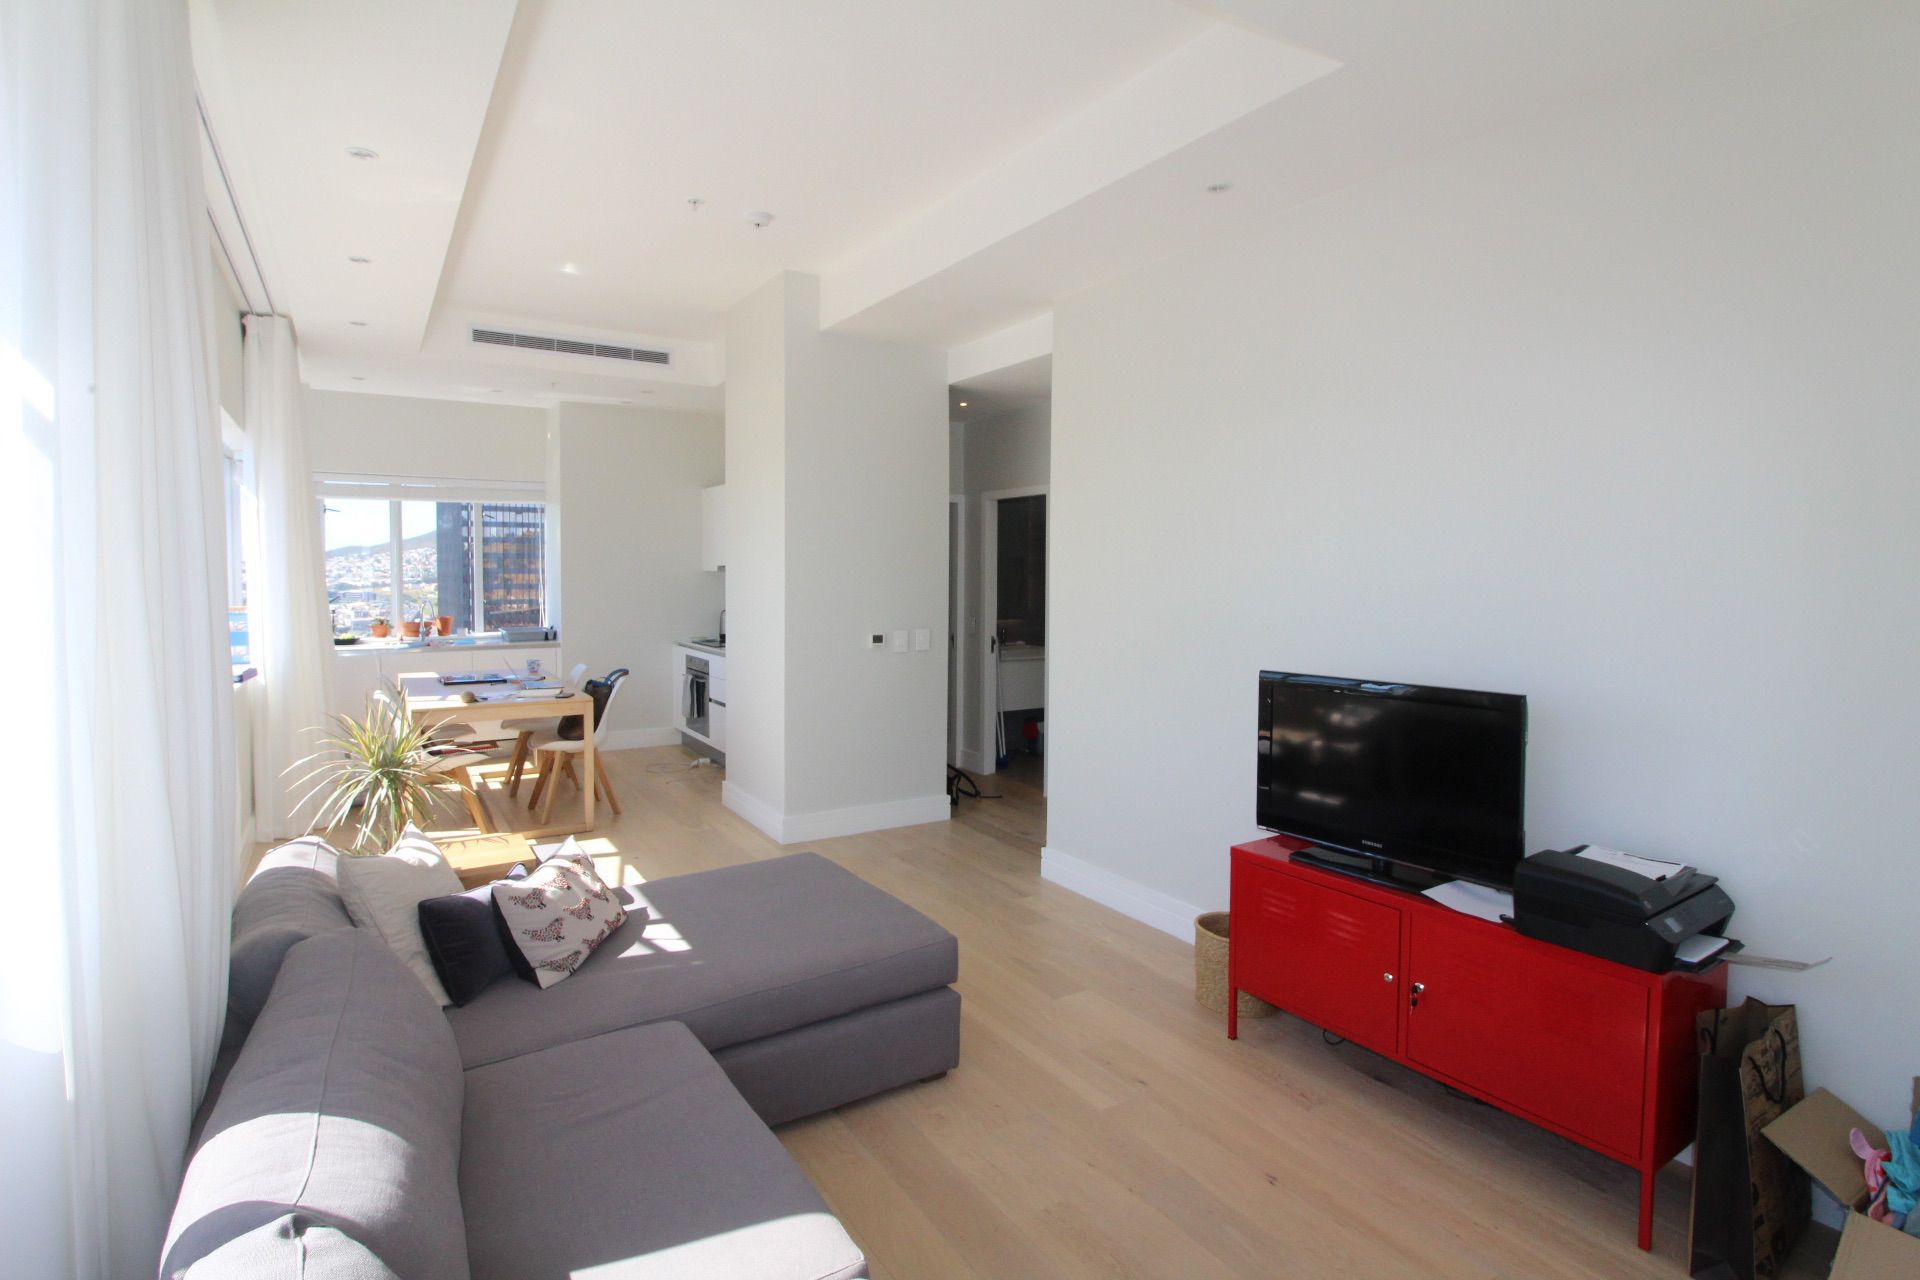 Apartment To Rent In Cape Town City Centre 2 Bedroom 13542369 2 12